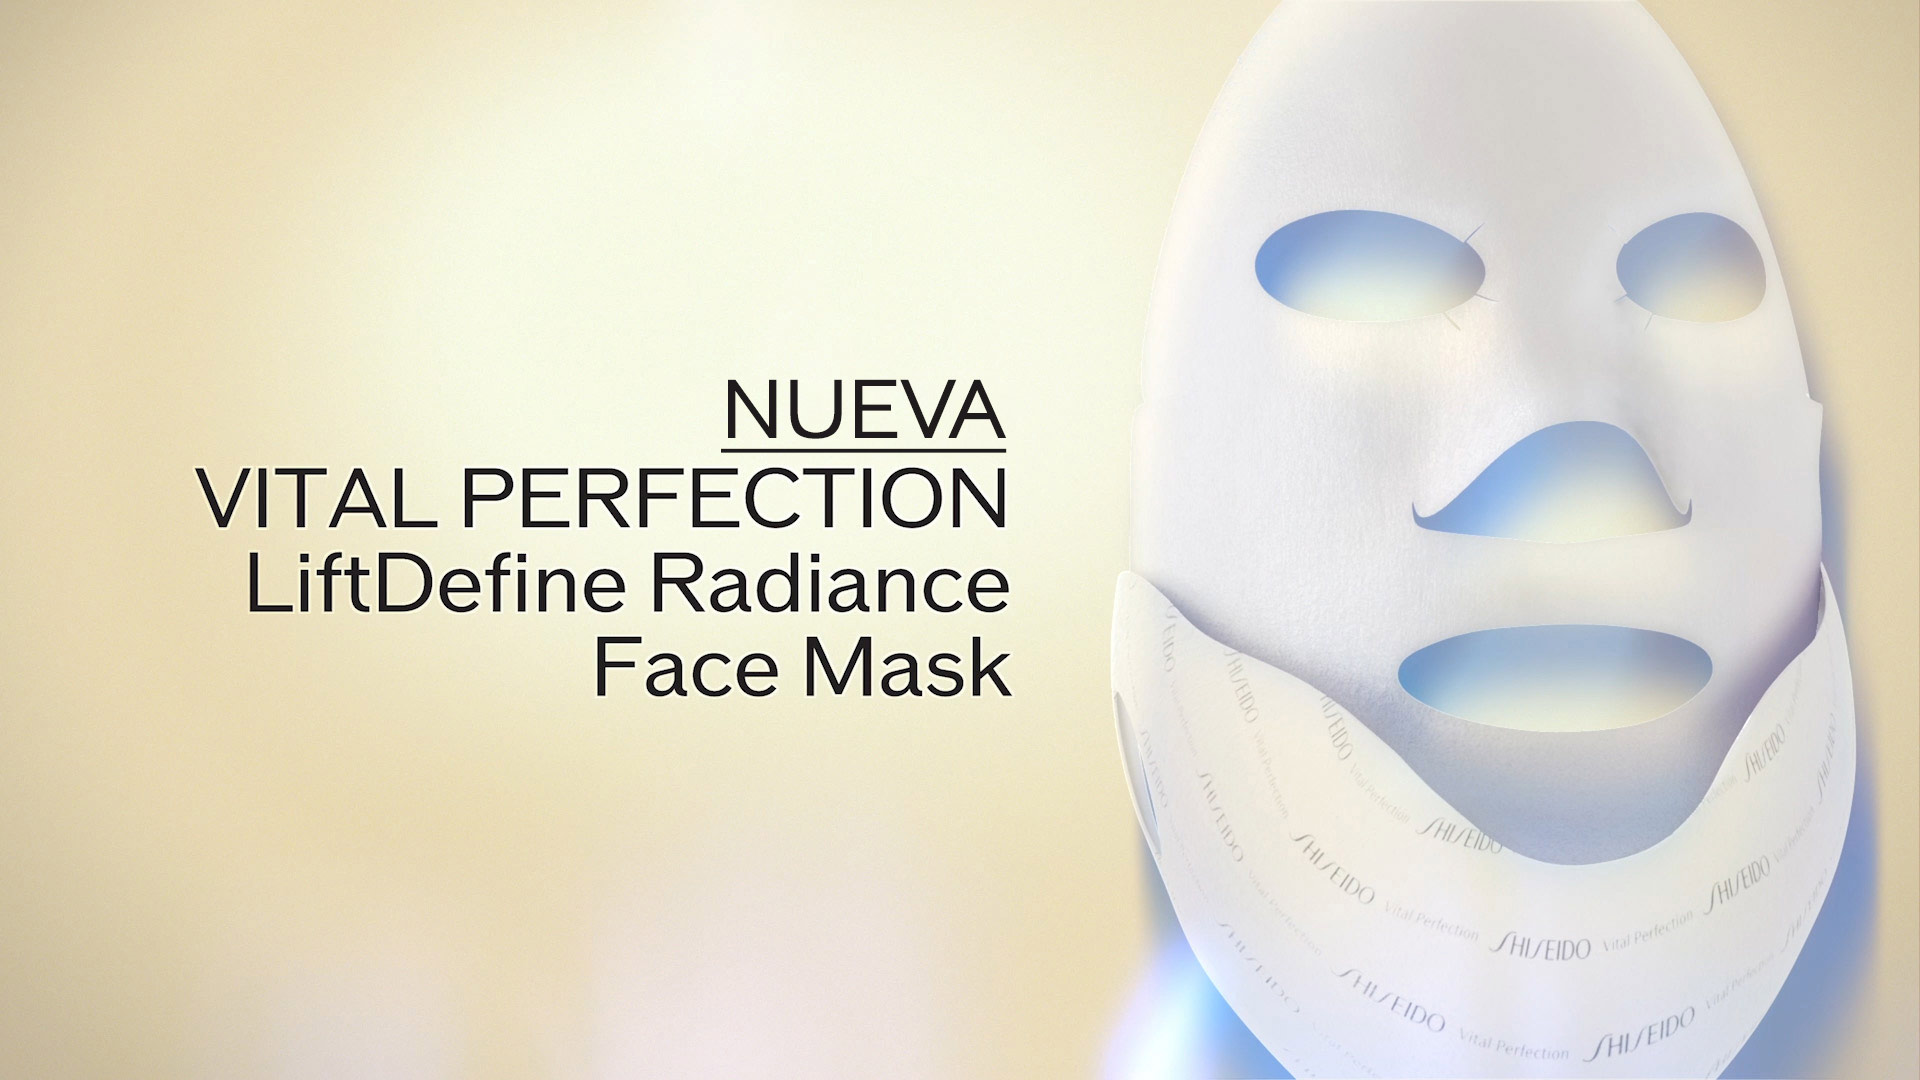 NUEVA Vital Perfection LifeDefine Radiance Face Mask